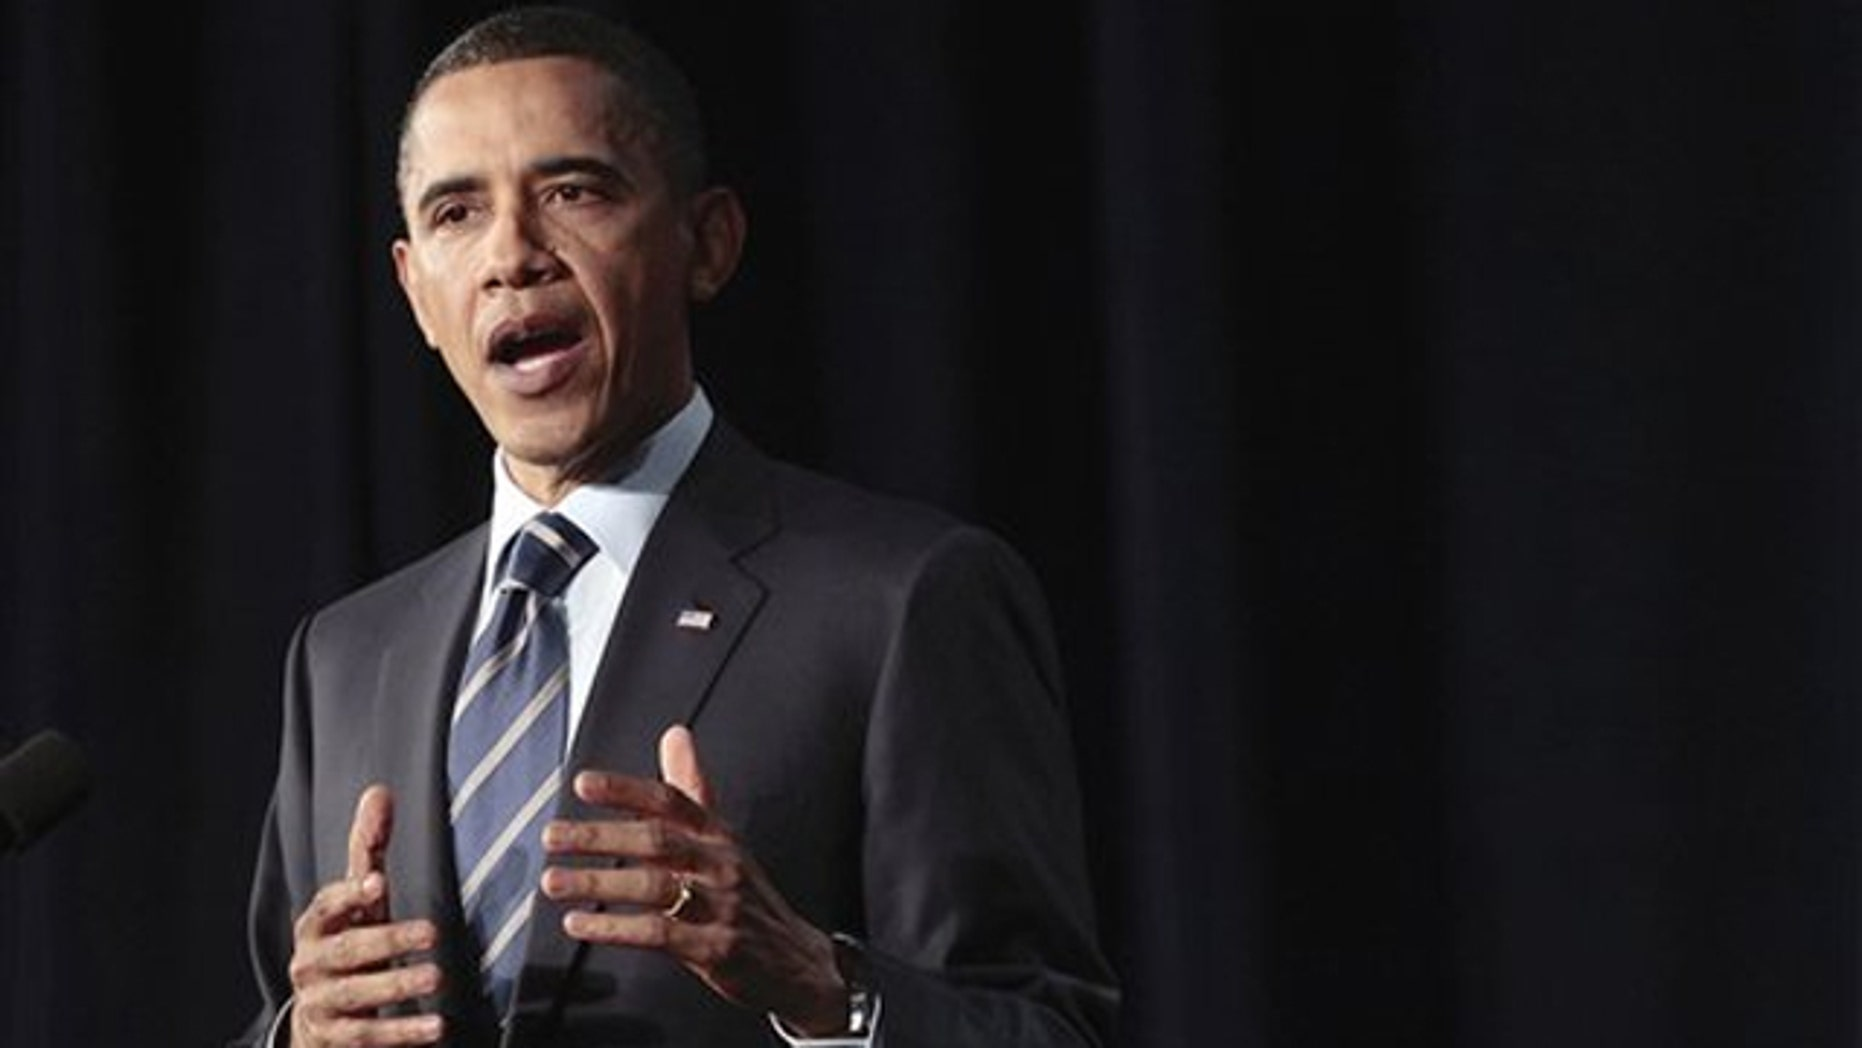 President Obama outlines his fiscal policy during an address at George Washington University in Washington April 13.